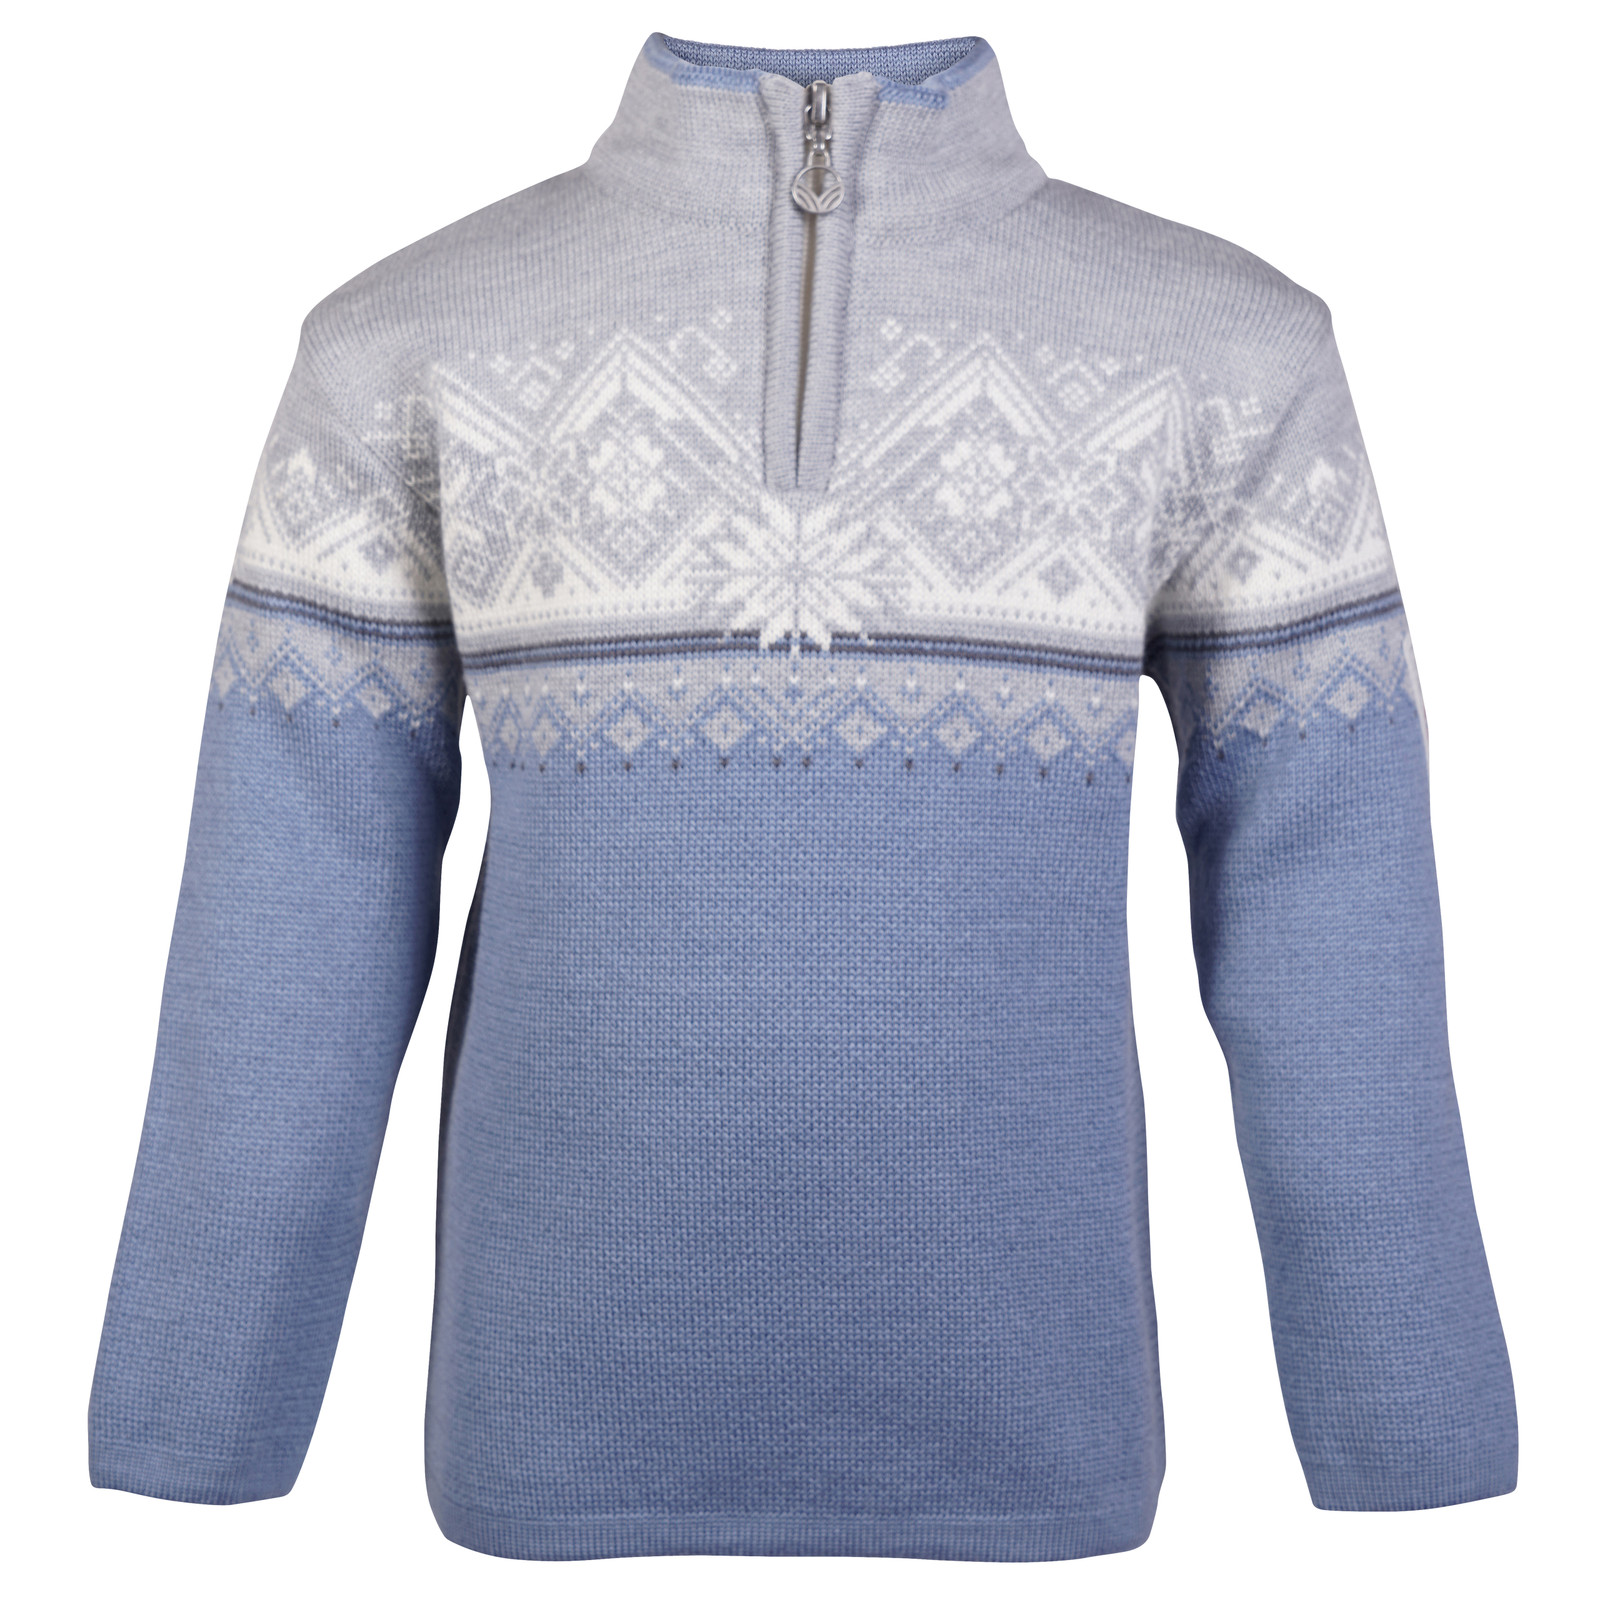 Dale of Norway Moritz Sweater, Childrens - Blue Shadow/Grey/Schiefer/Off White, 9150-D